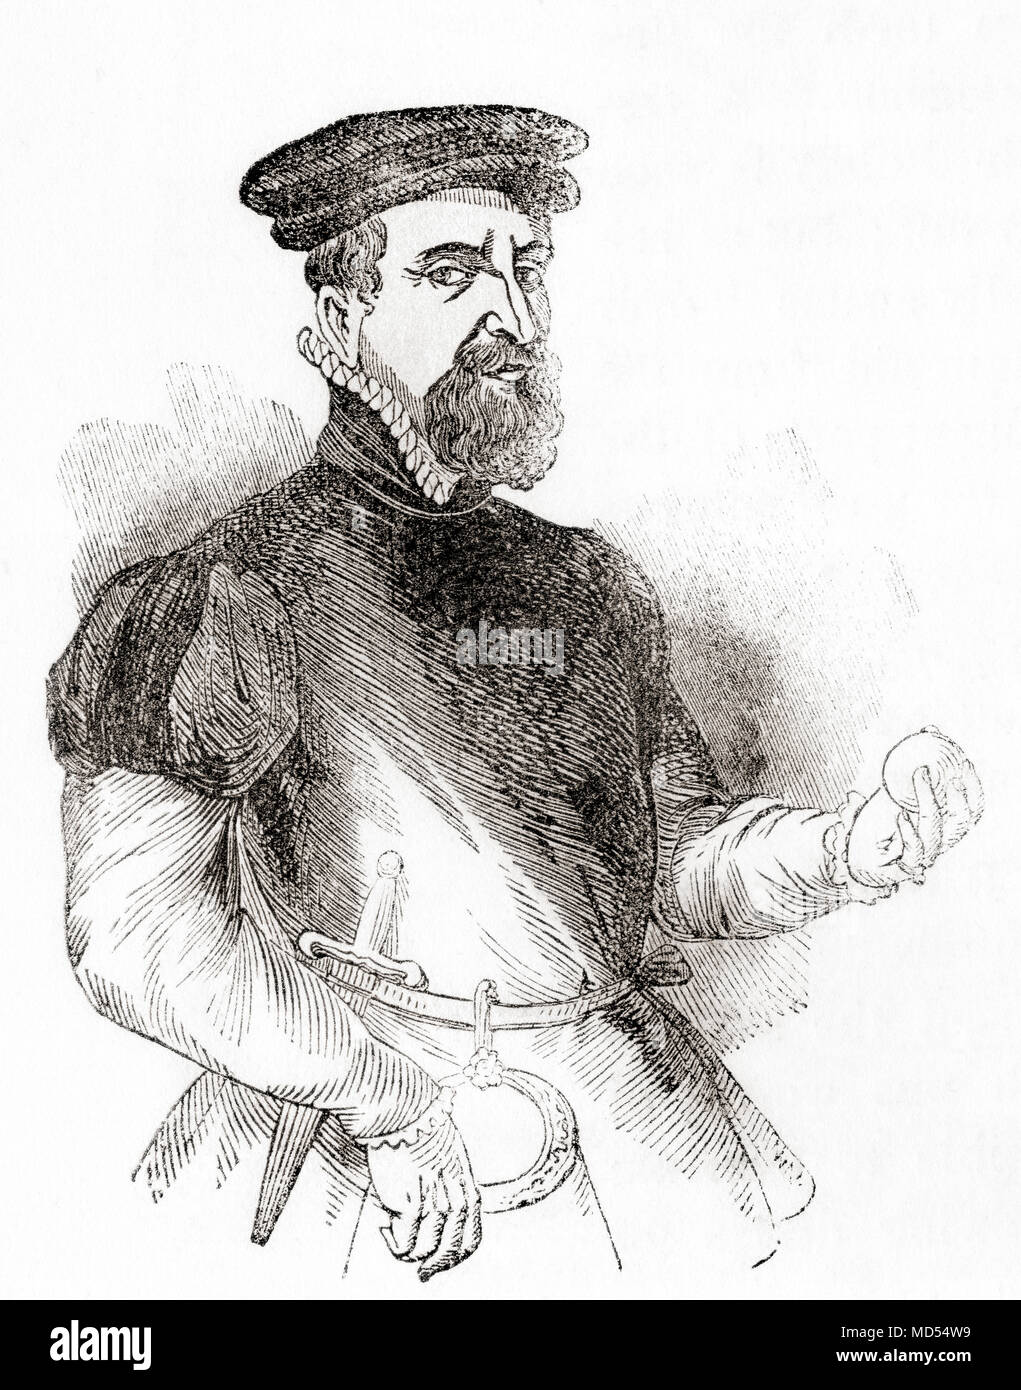 Sir Thomas Gresham the Elder, c. 1519 – 1579.  English merchant and financier.  From Old England: A Pictorial Museum, published 1847. Stock Photo